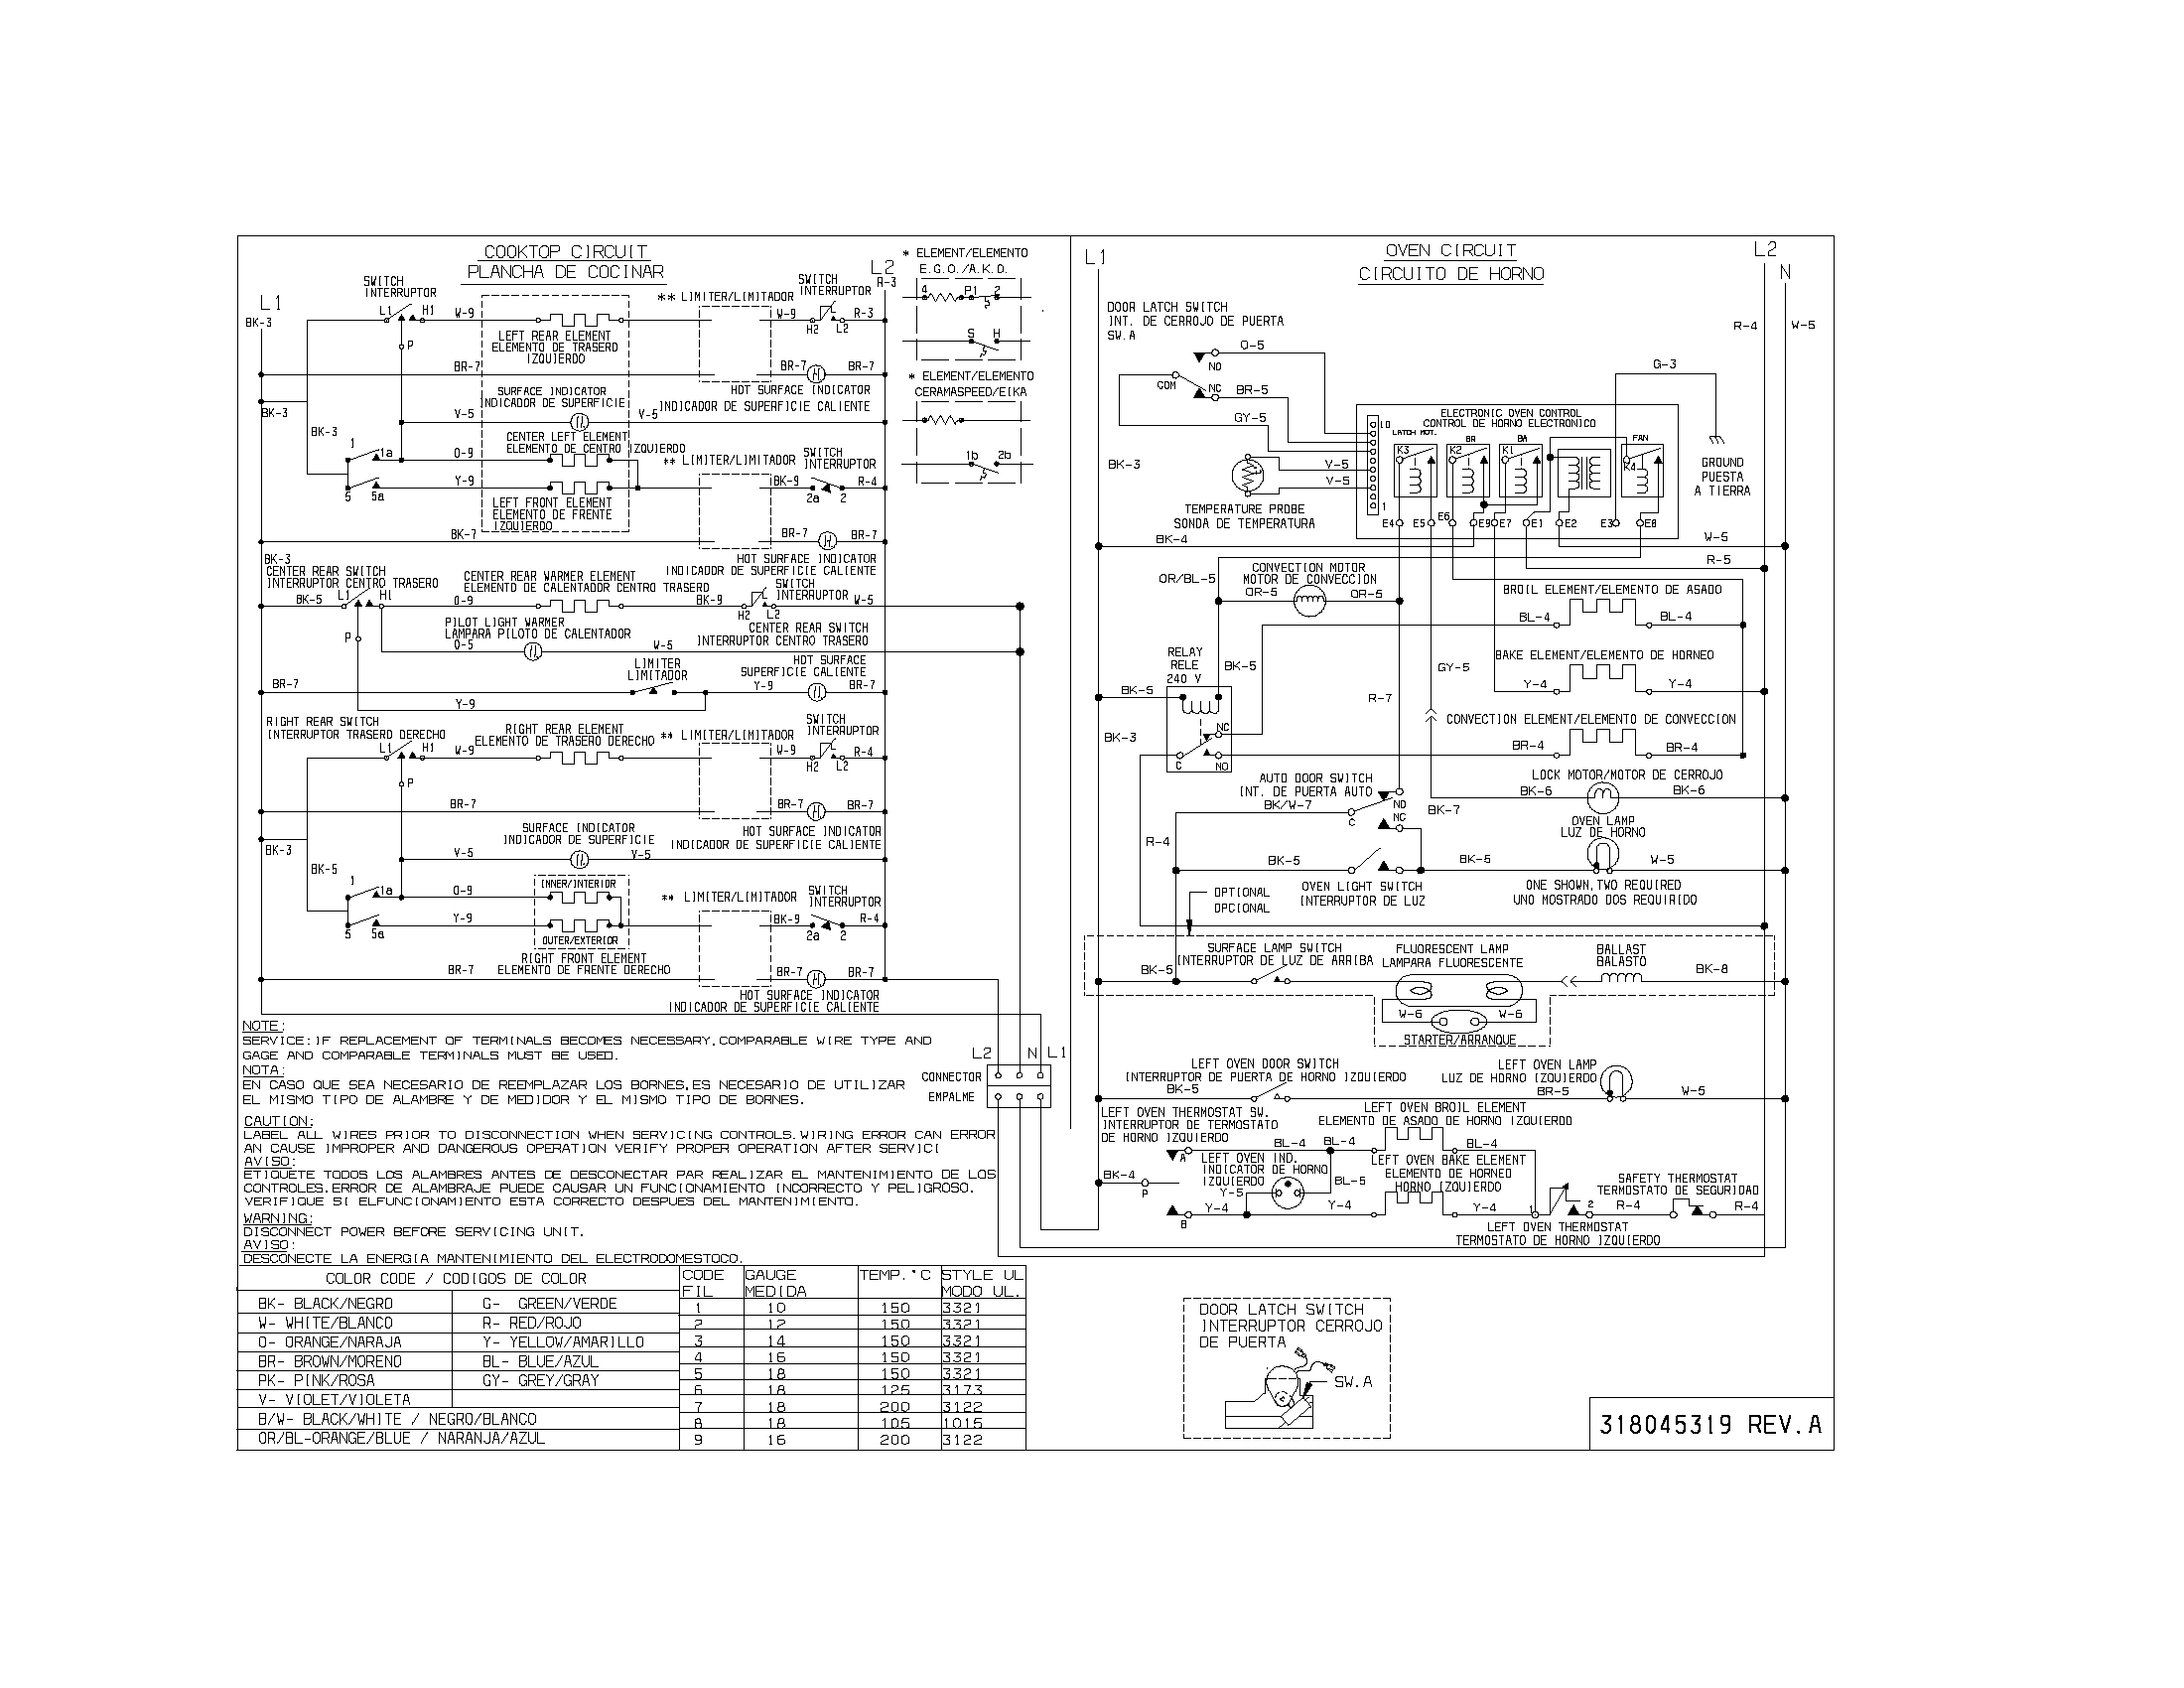 wiring diagram parts kenmore 79099503993 elite electric range timer stove clocks and kenmore elite refrigerator wiring diagram at soozxer.org